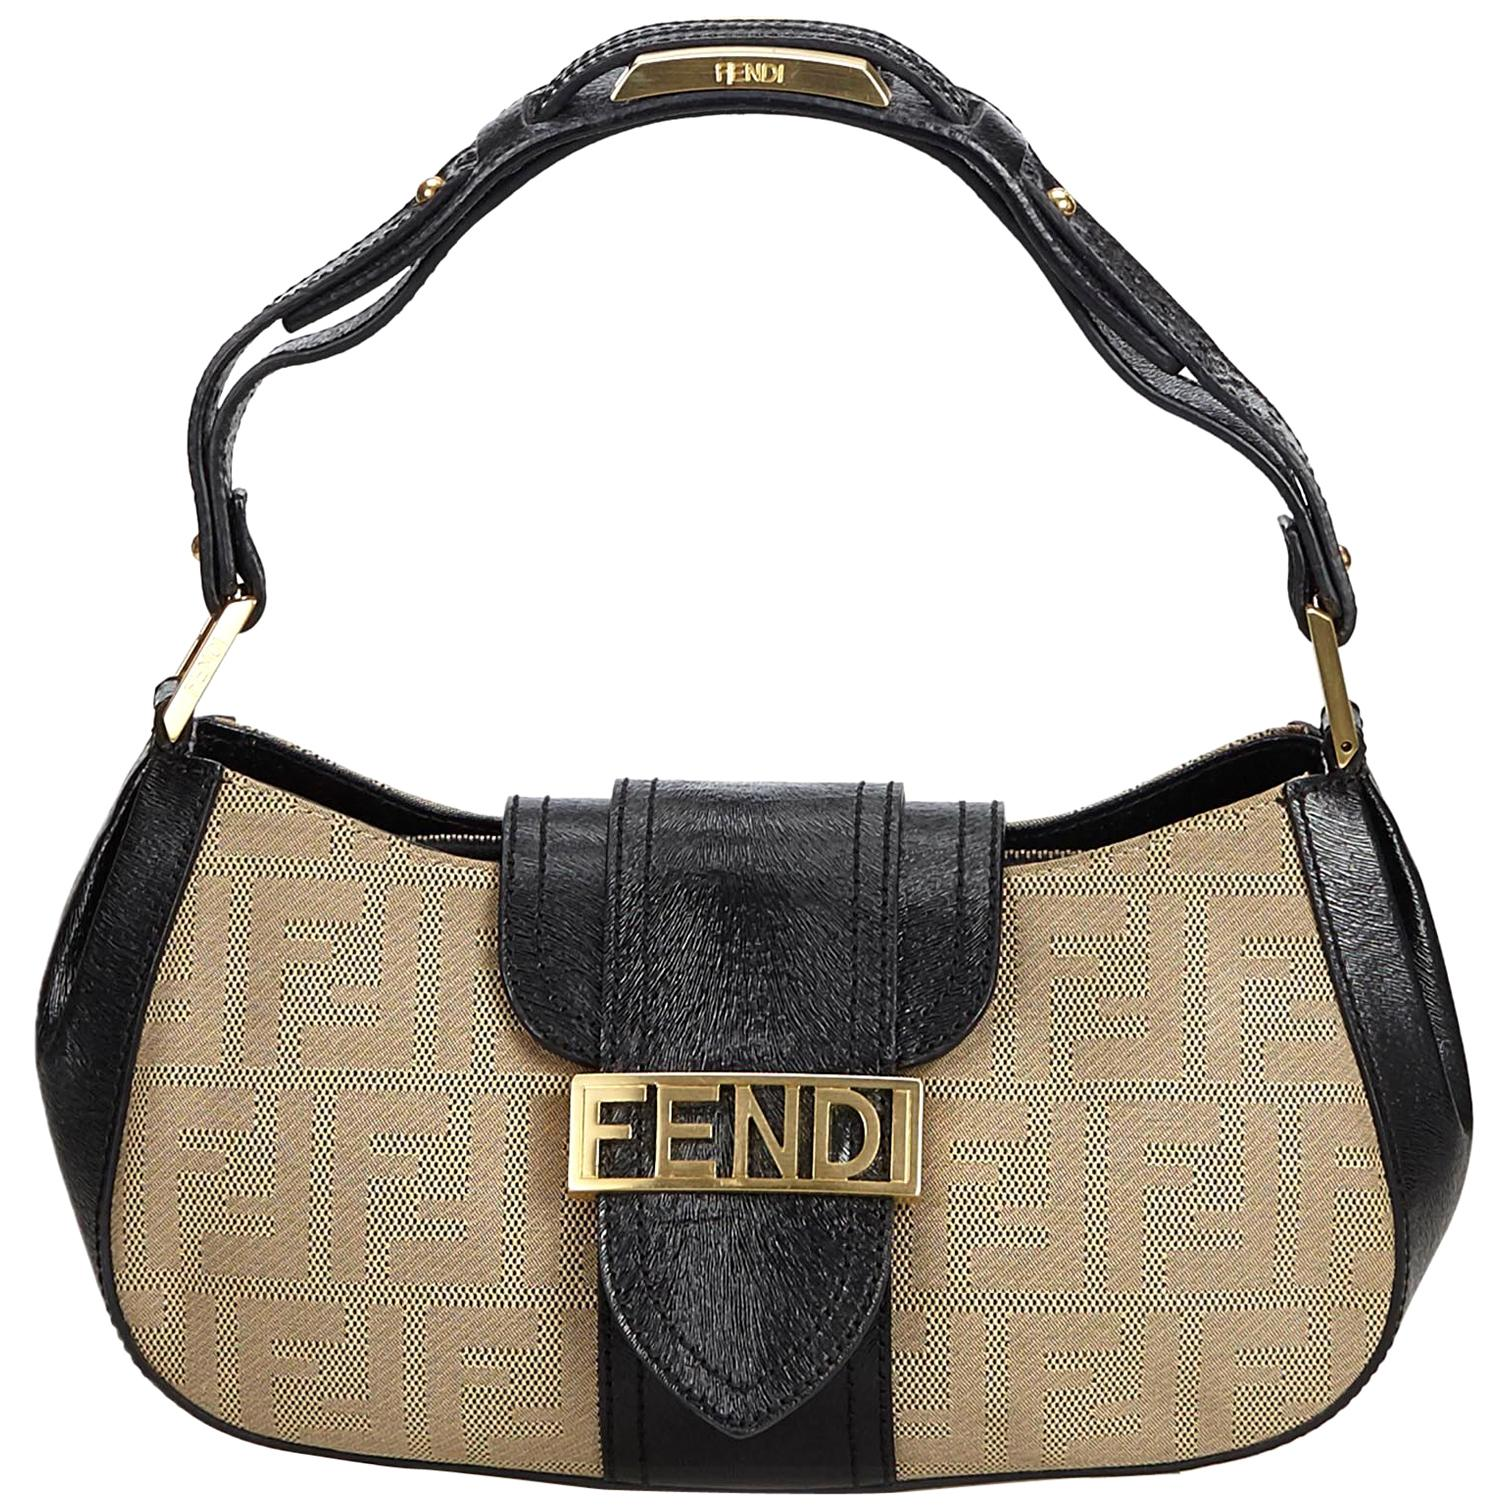 7be98ed0a17c Vintage Fendi Top Handle Bags - 235 For Sale at 1stdibs